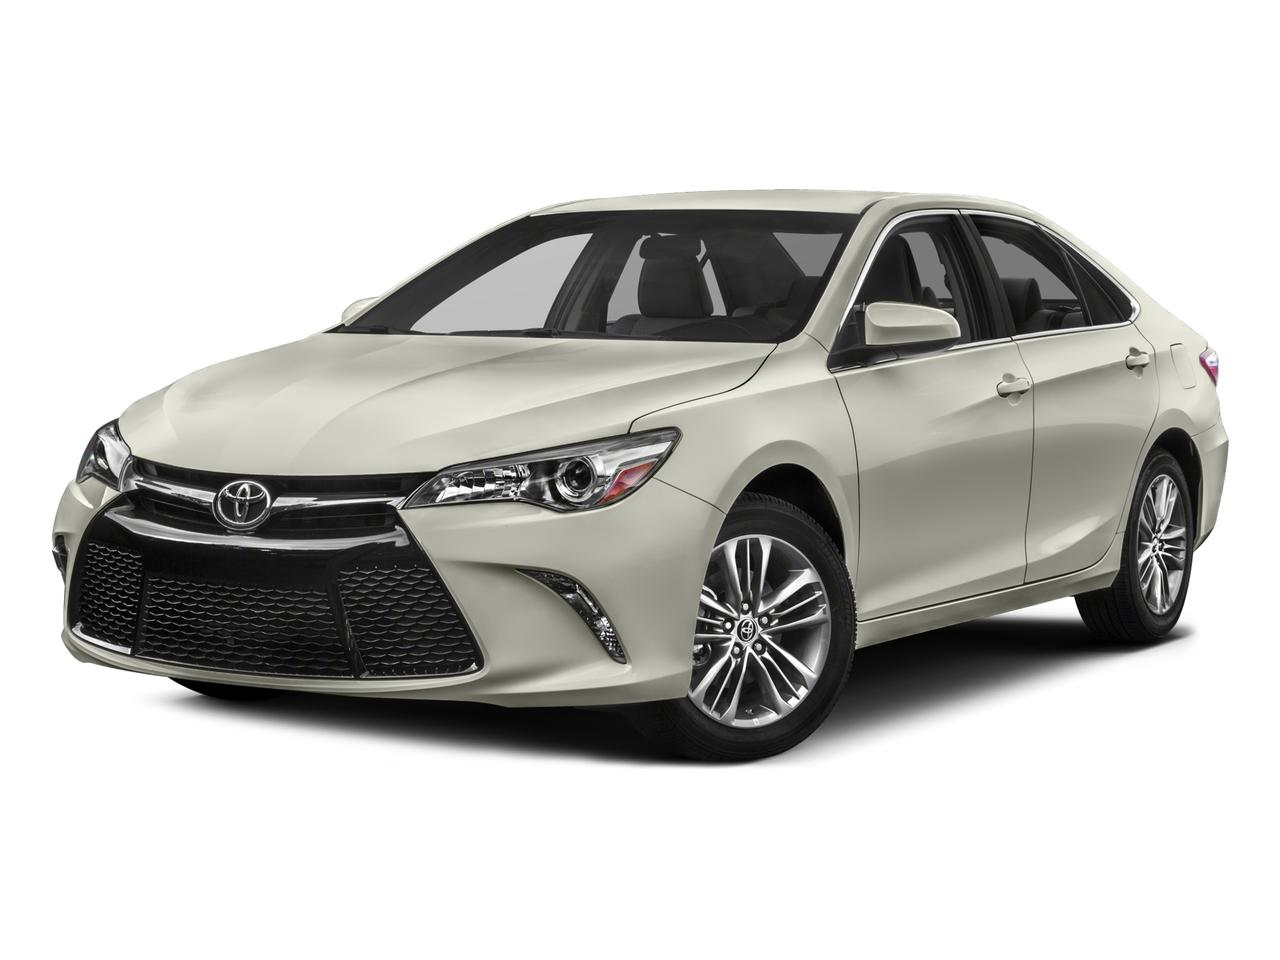 2017 Toyota Camry Vehicle Photo in American Fork, UT 84003